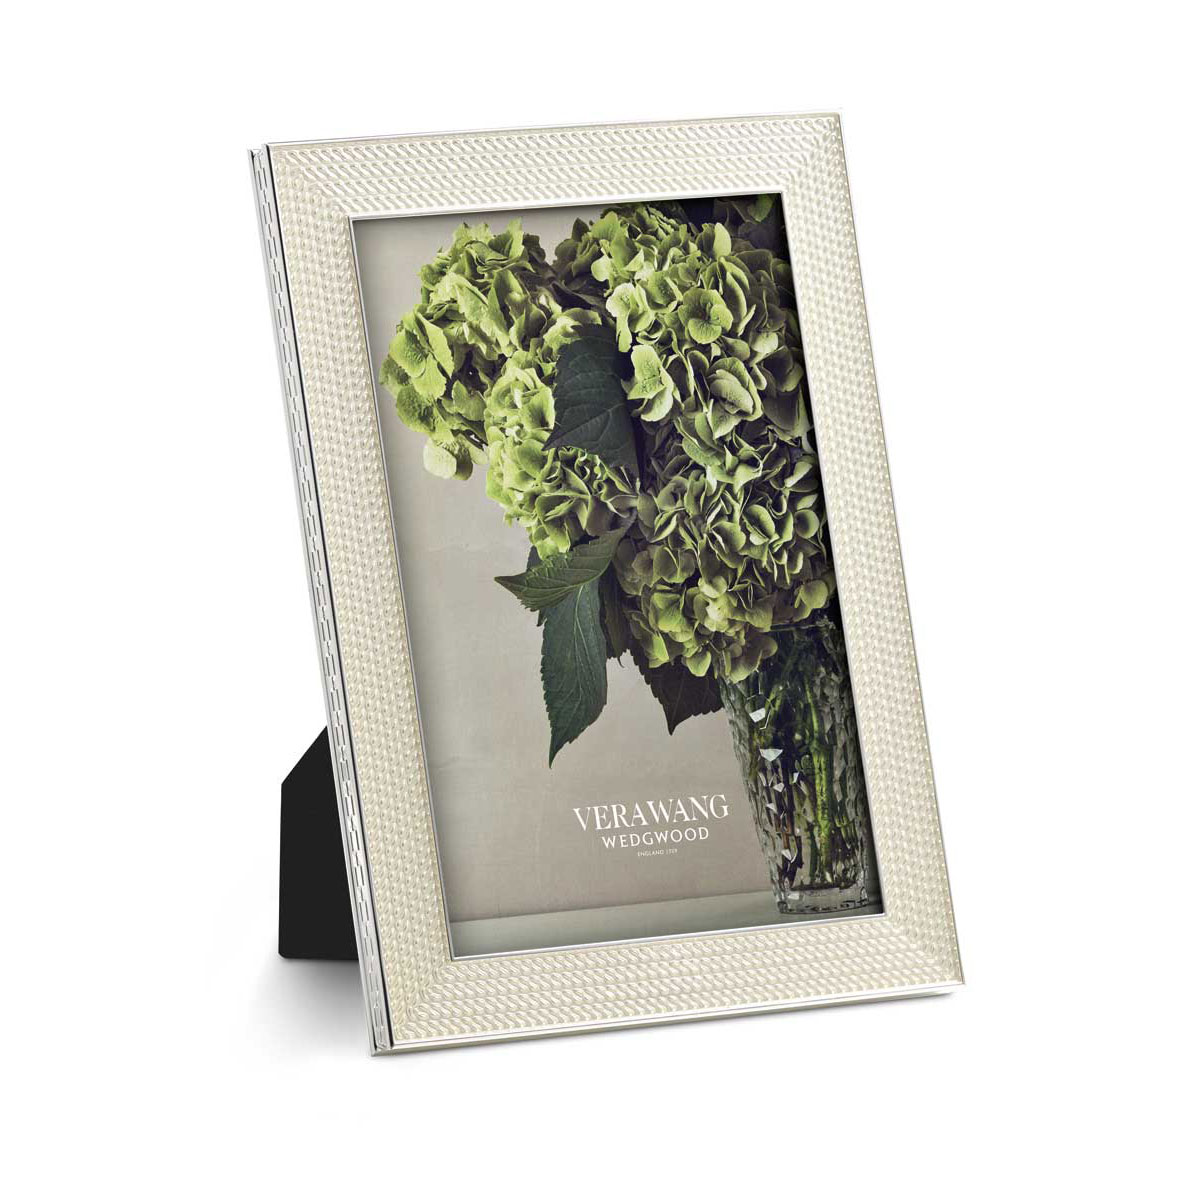 Vera Wang Wedgwood With Love Nouveau 4x6 Frame, Pearl